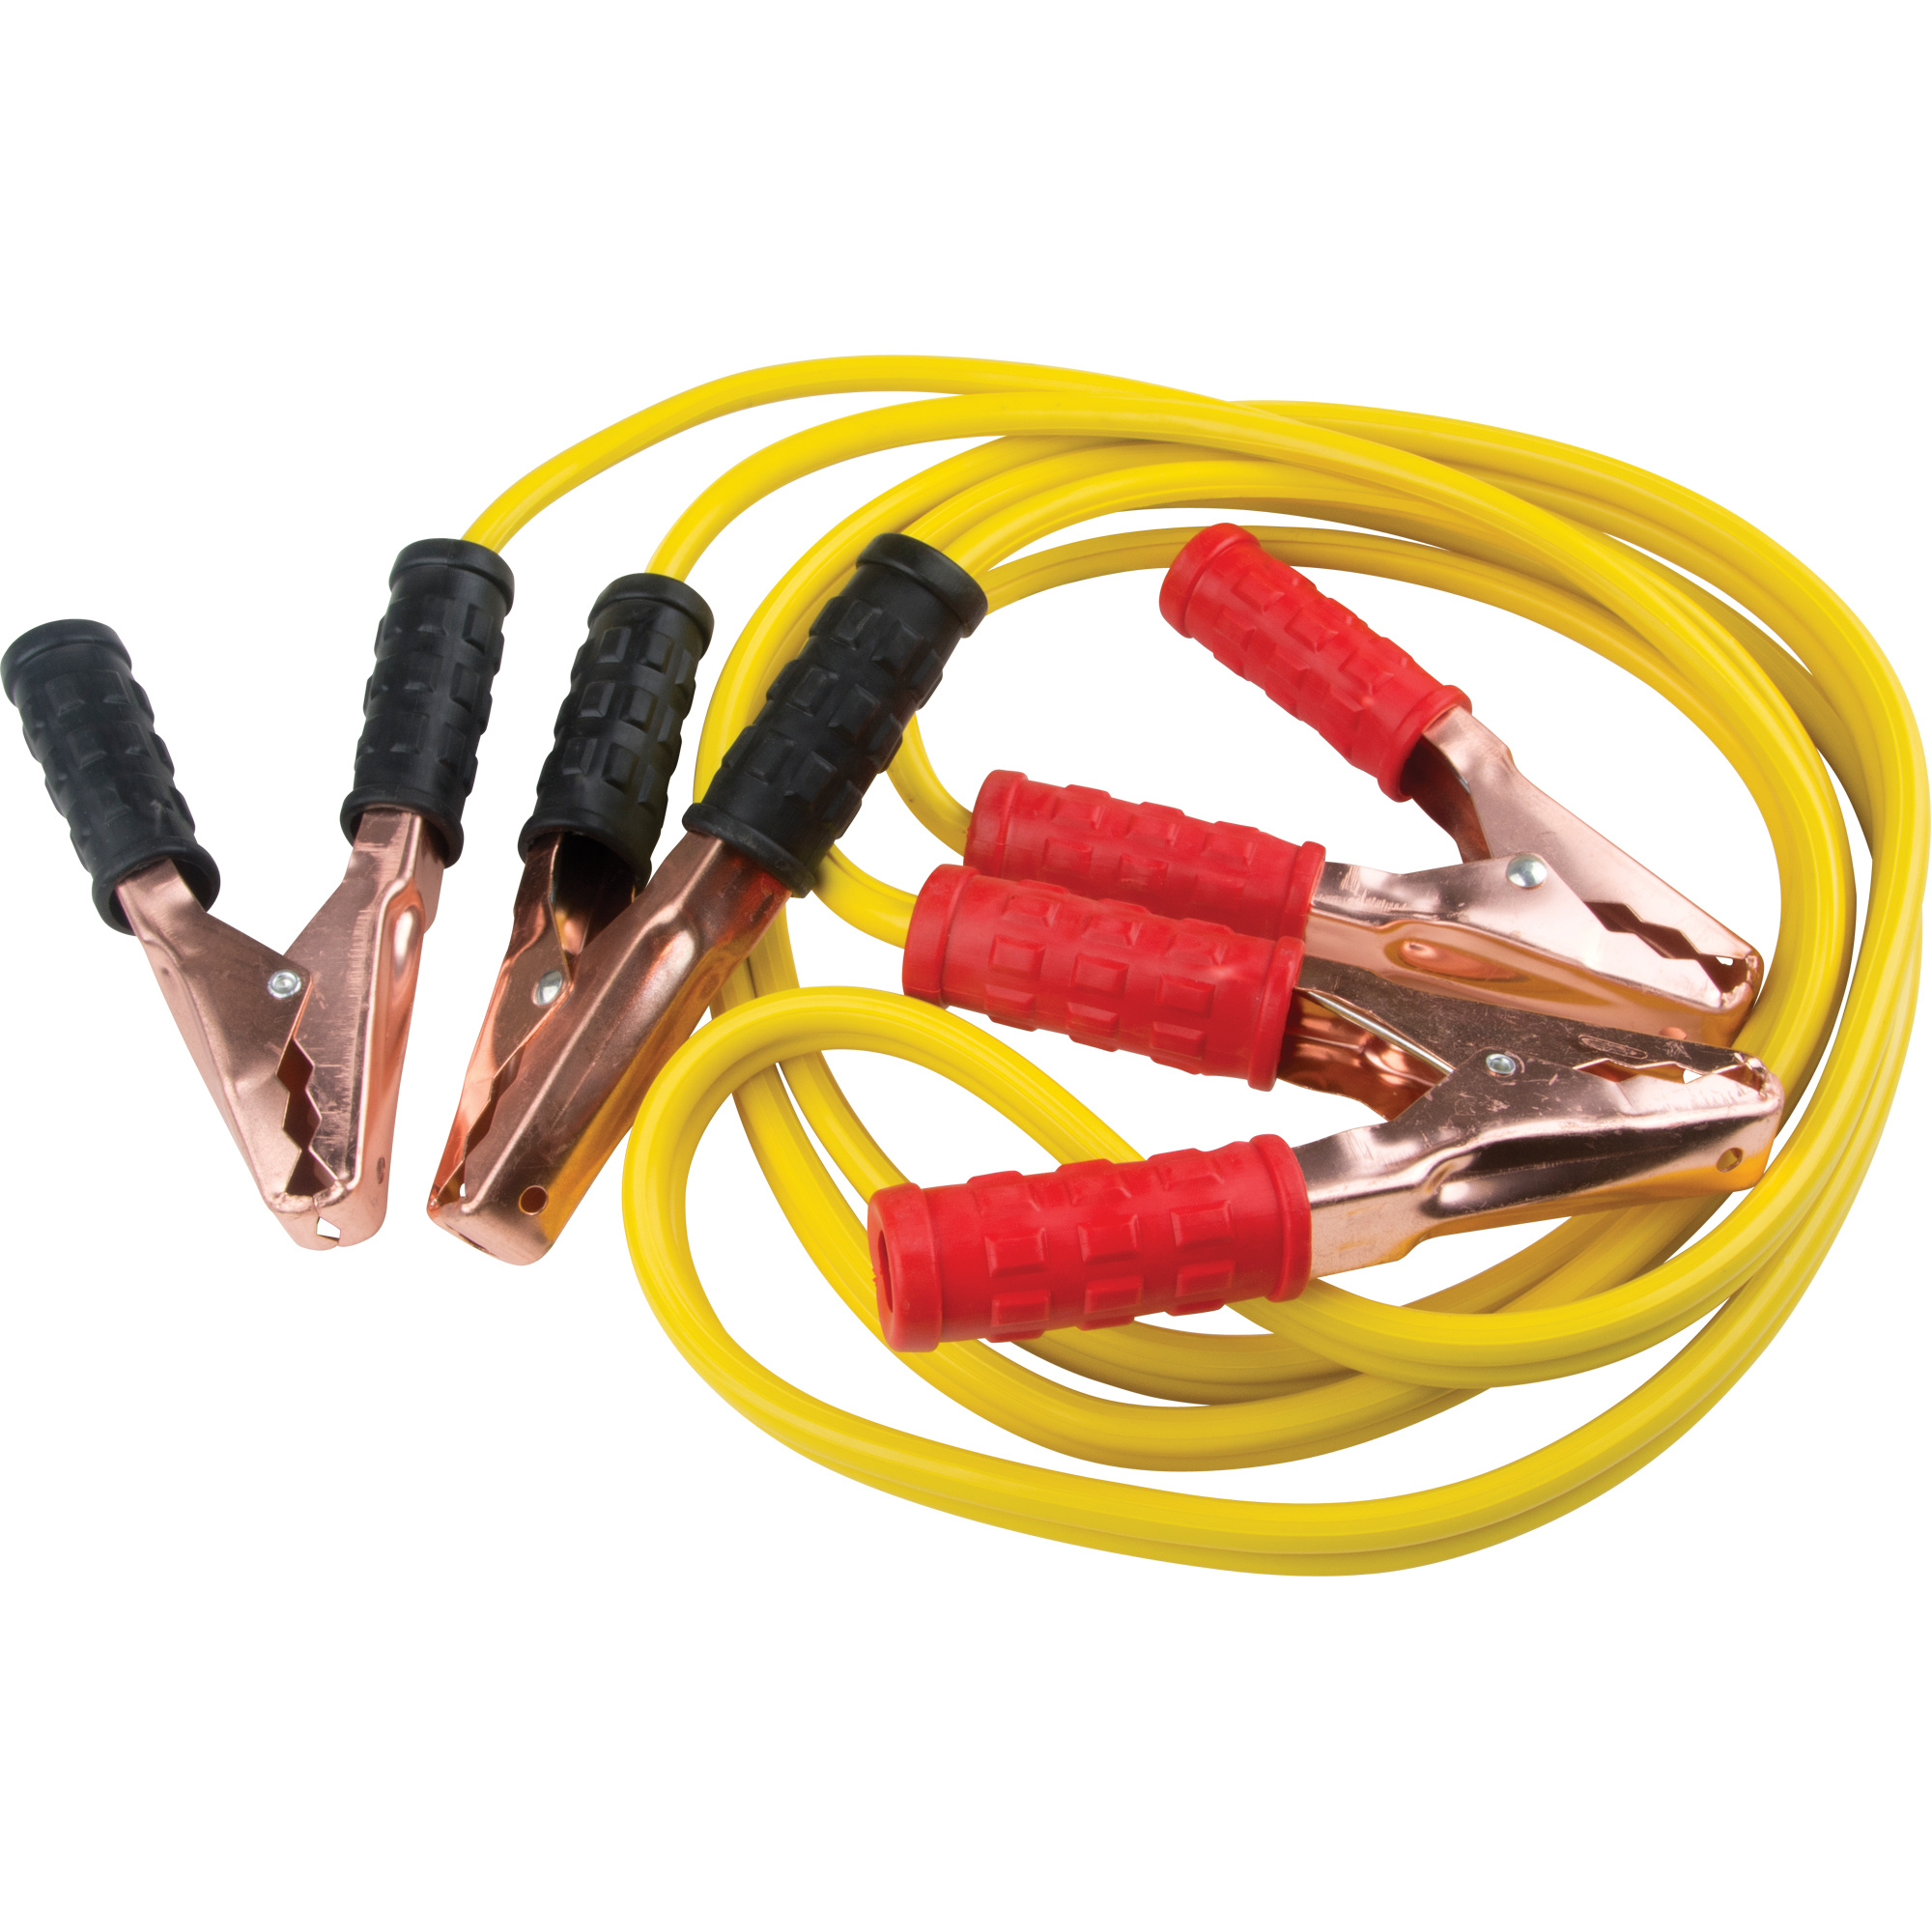 Aurora Booster Cables 10'